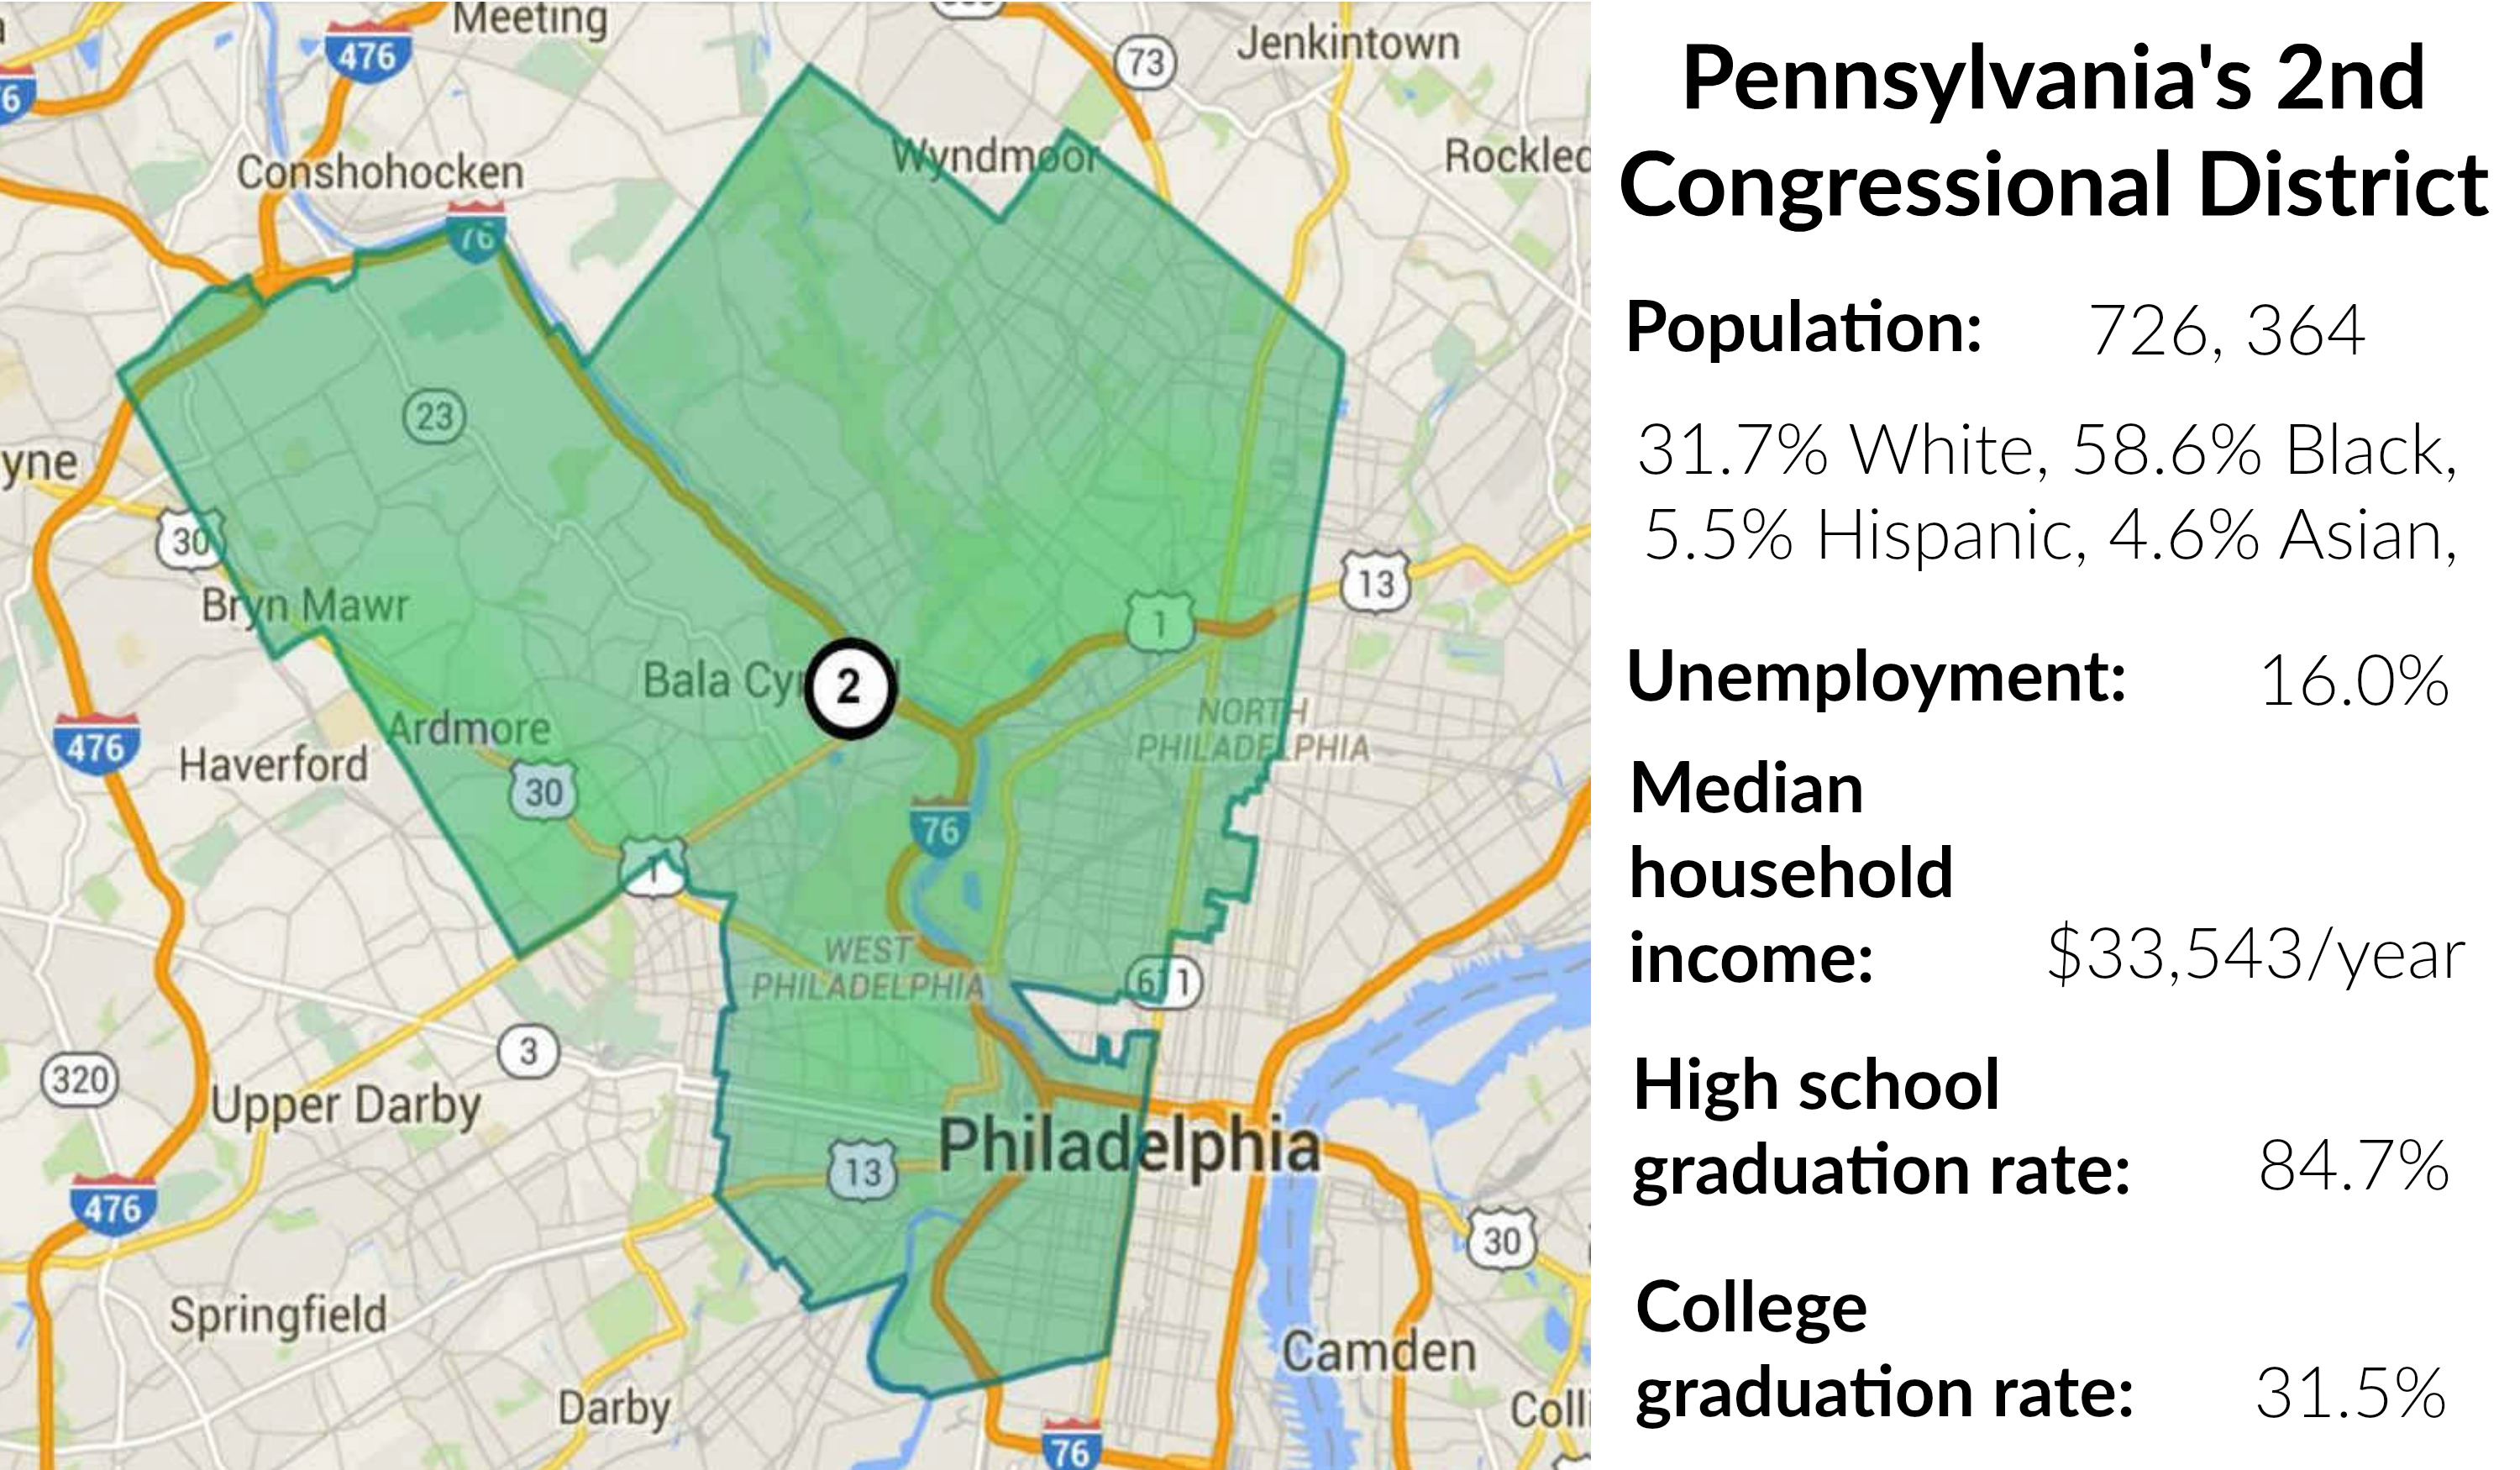 eastfallslocal-pa-congress-district-retype-with-map-post